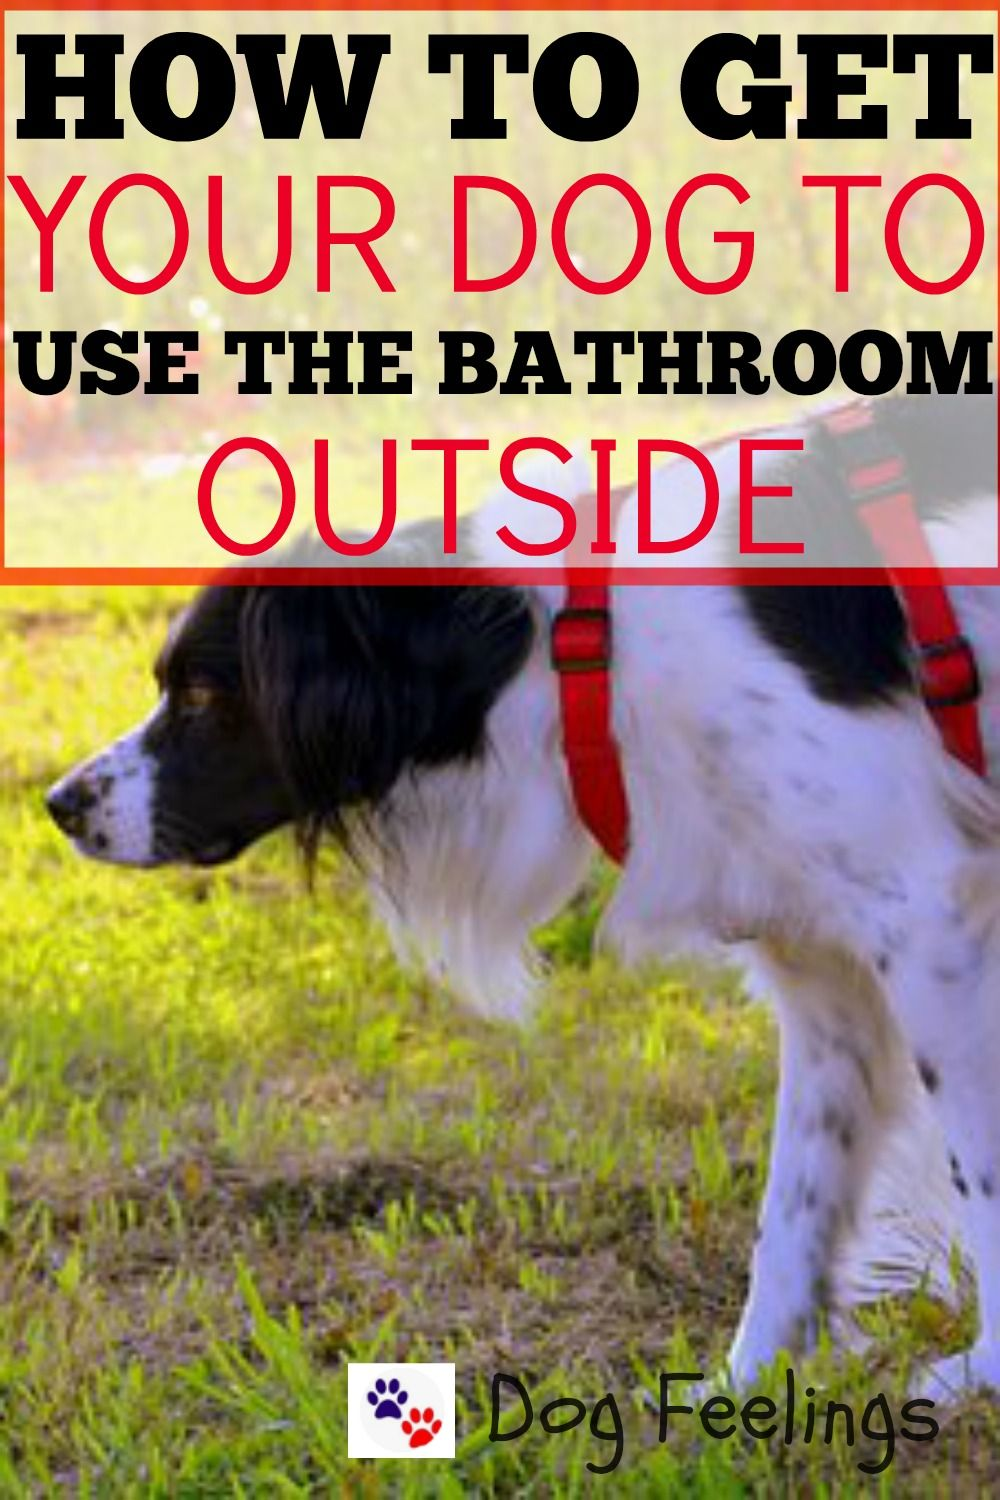 How To Get Your Dog To Use The Bathroom Outside Https Dogfeelings Com Get Dog Use Bathroom Outside Big Dog Little Dog Outside Dogs Dog Advice